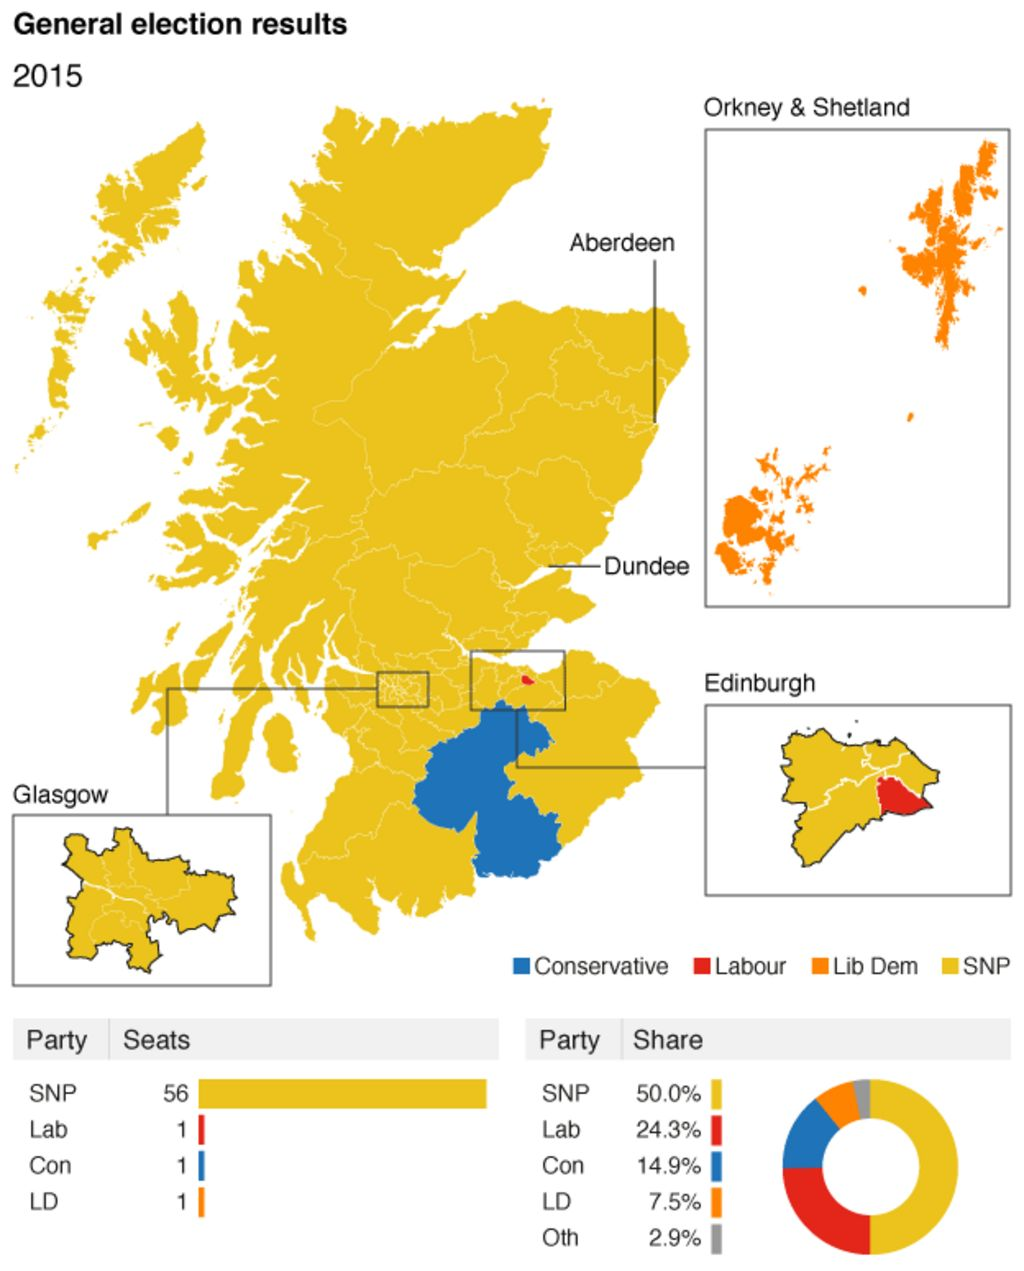 Election Results Mapping Scotlands Dramatic Change BBC News - 2015 us election results map